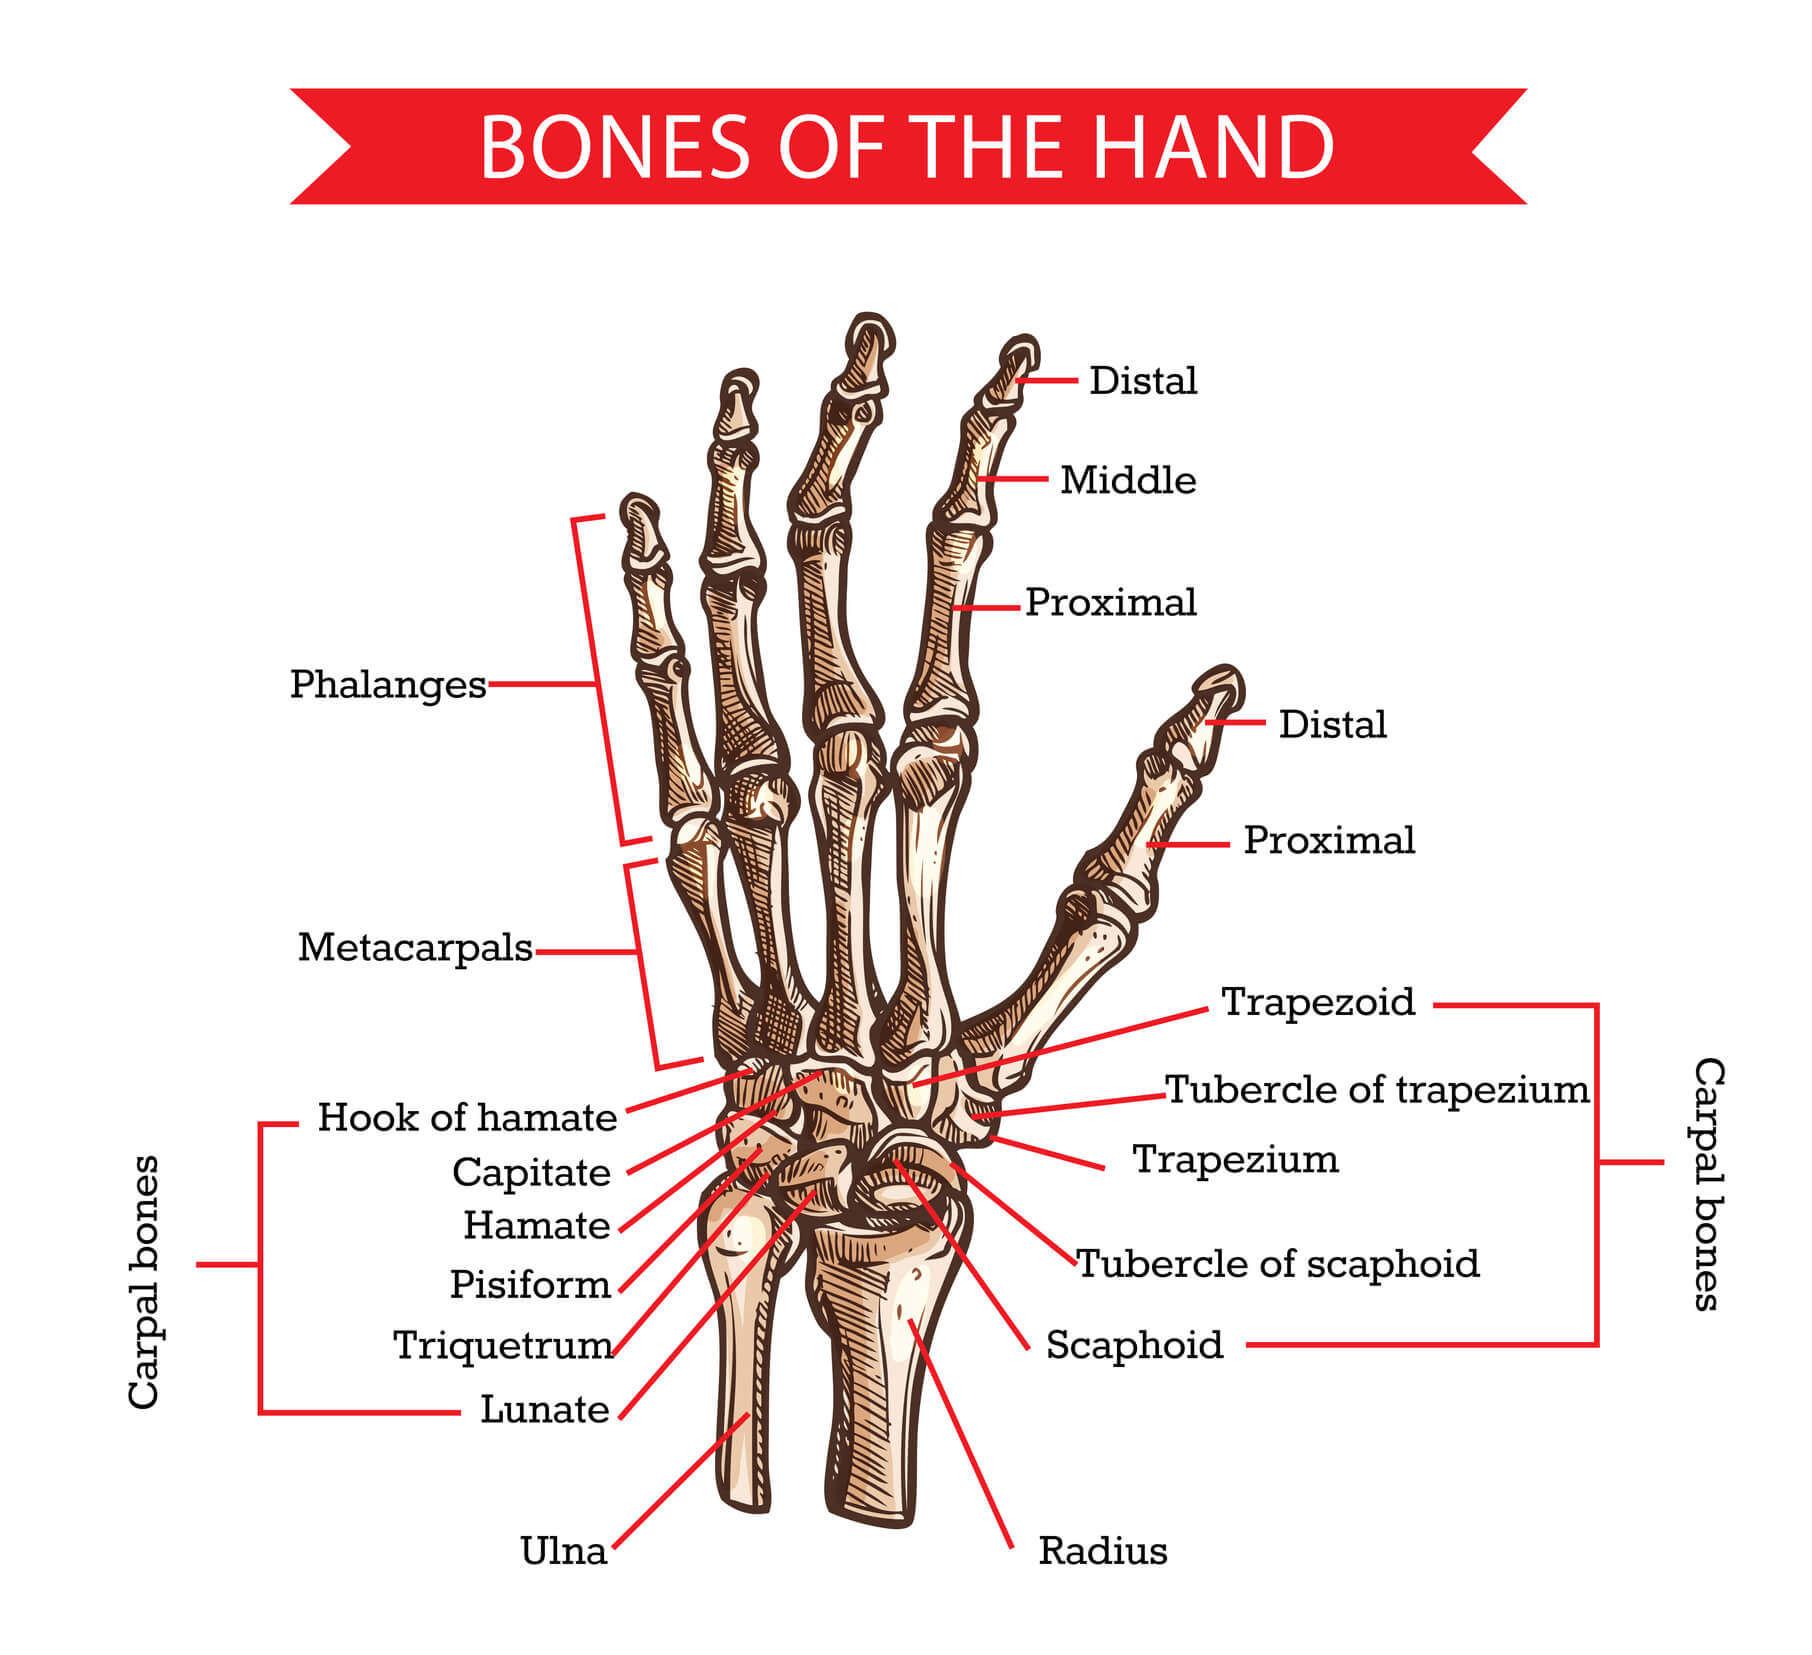 Image of the bones of the wrist and hand